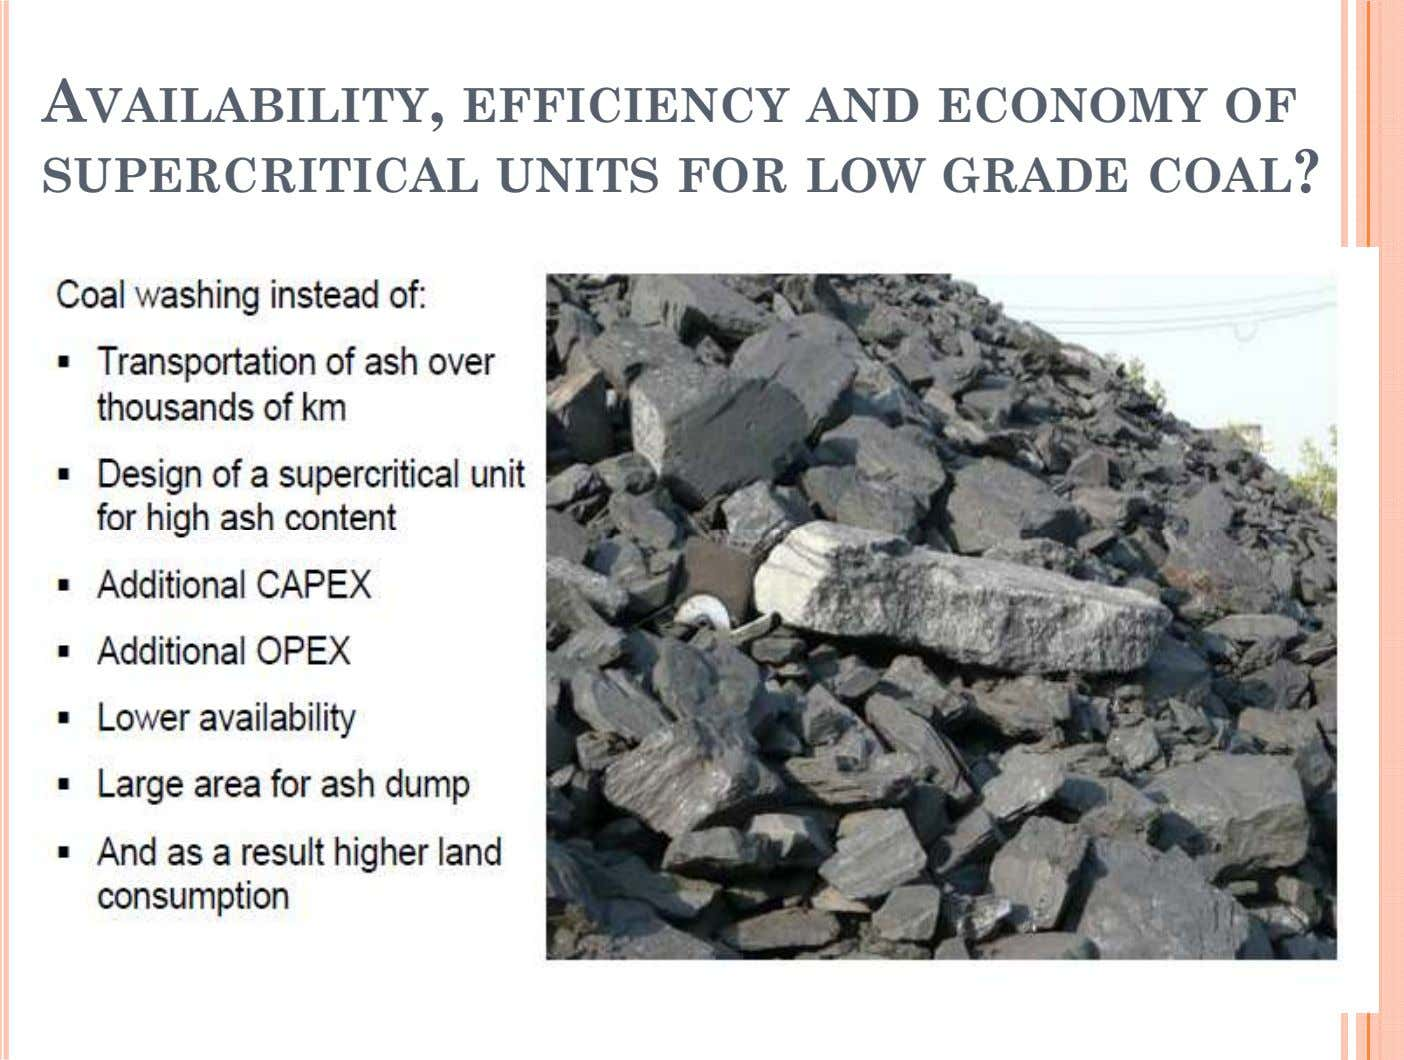 AVAILABILITY, EFFICIENCY AND ECONOMY OF SUPERCRITICAL UNITS FOR LOW GRADE COAL?